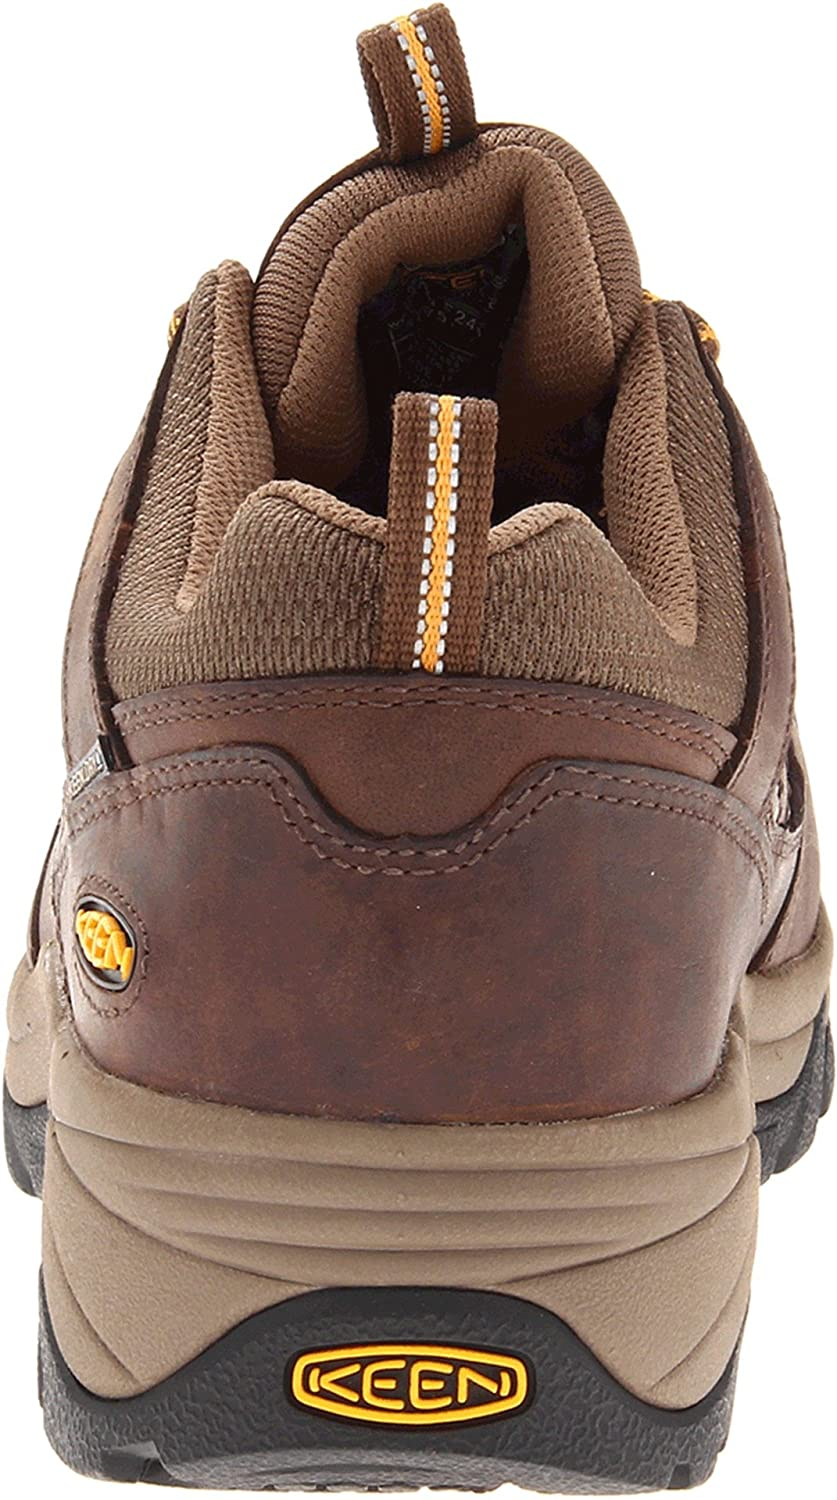 d2b4afd74a Amazon.com: Keen Utility Men's Lexington Dark Earth/Apricot Sneaker 7.5 D  (M): Shoes